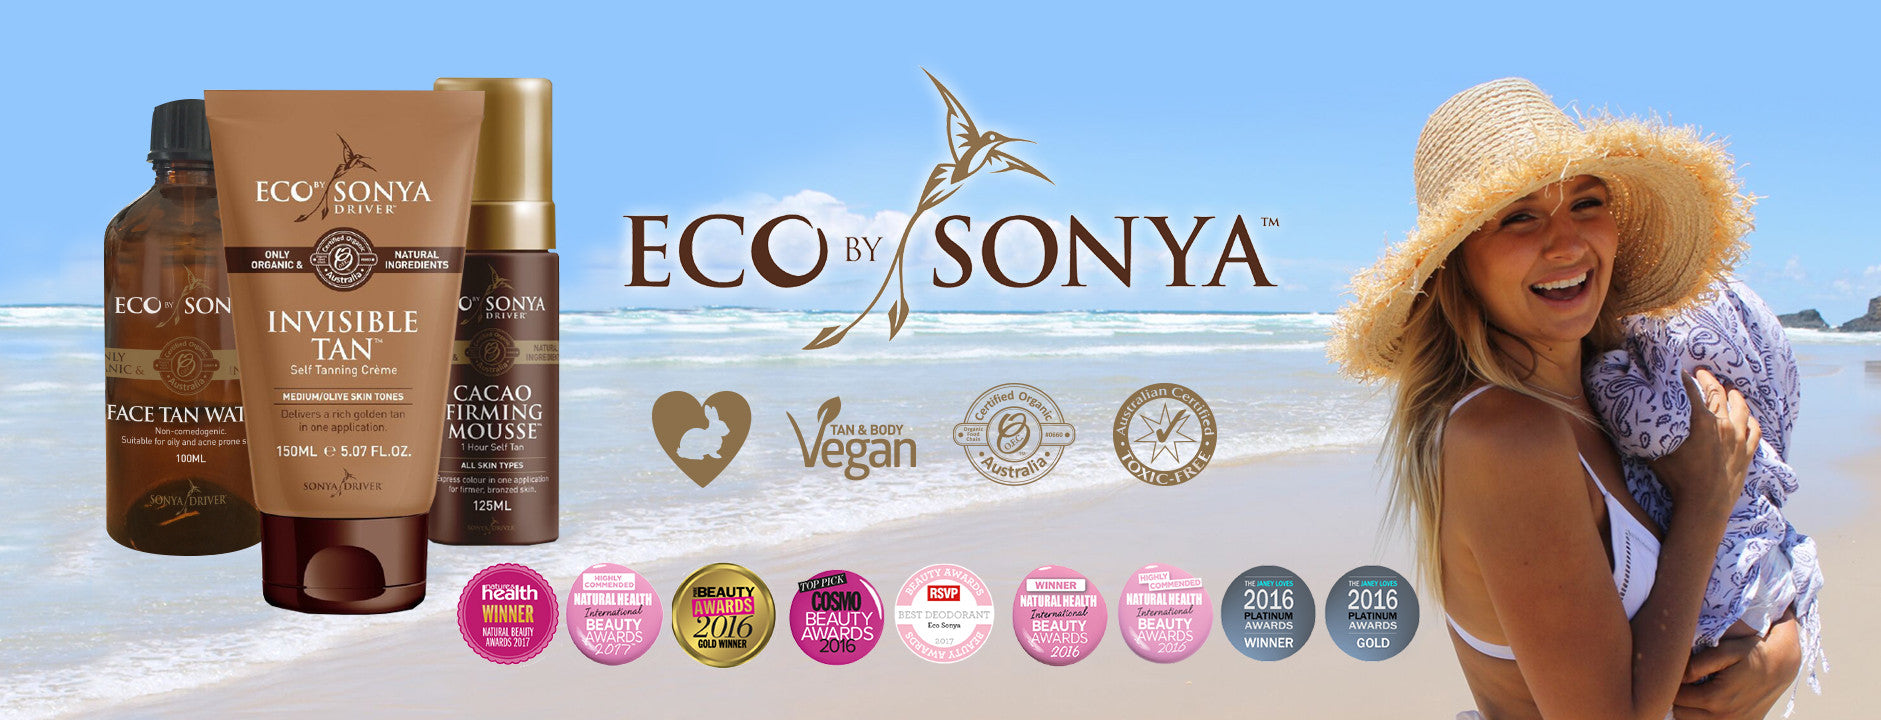 eco by sonya products UK